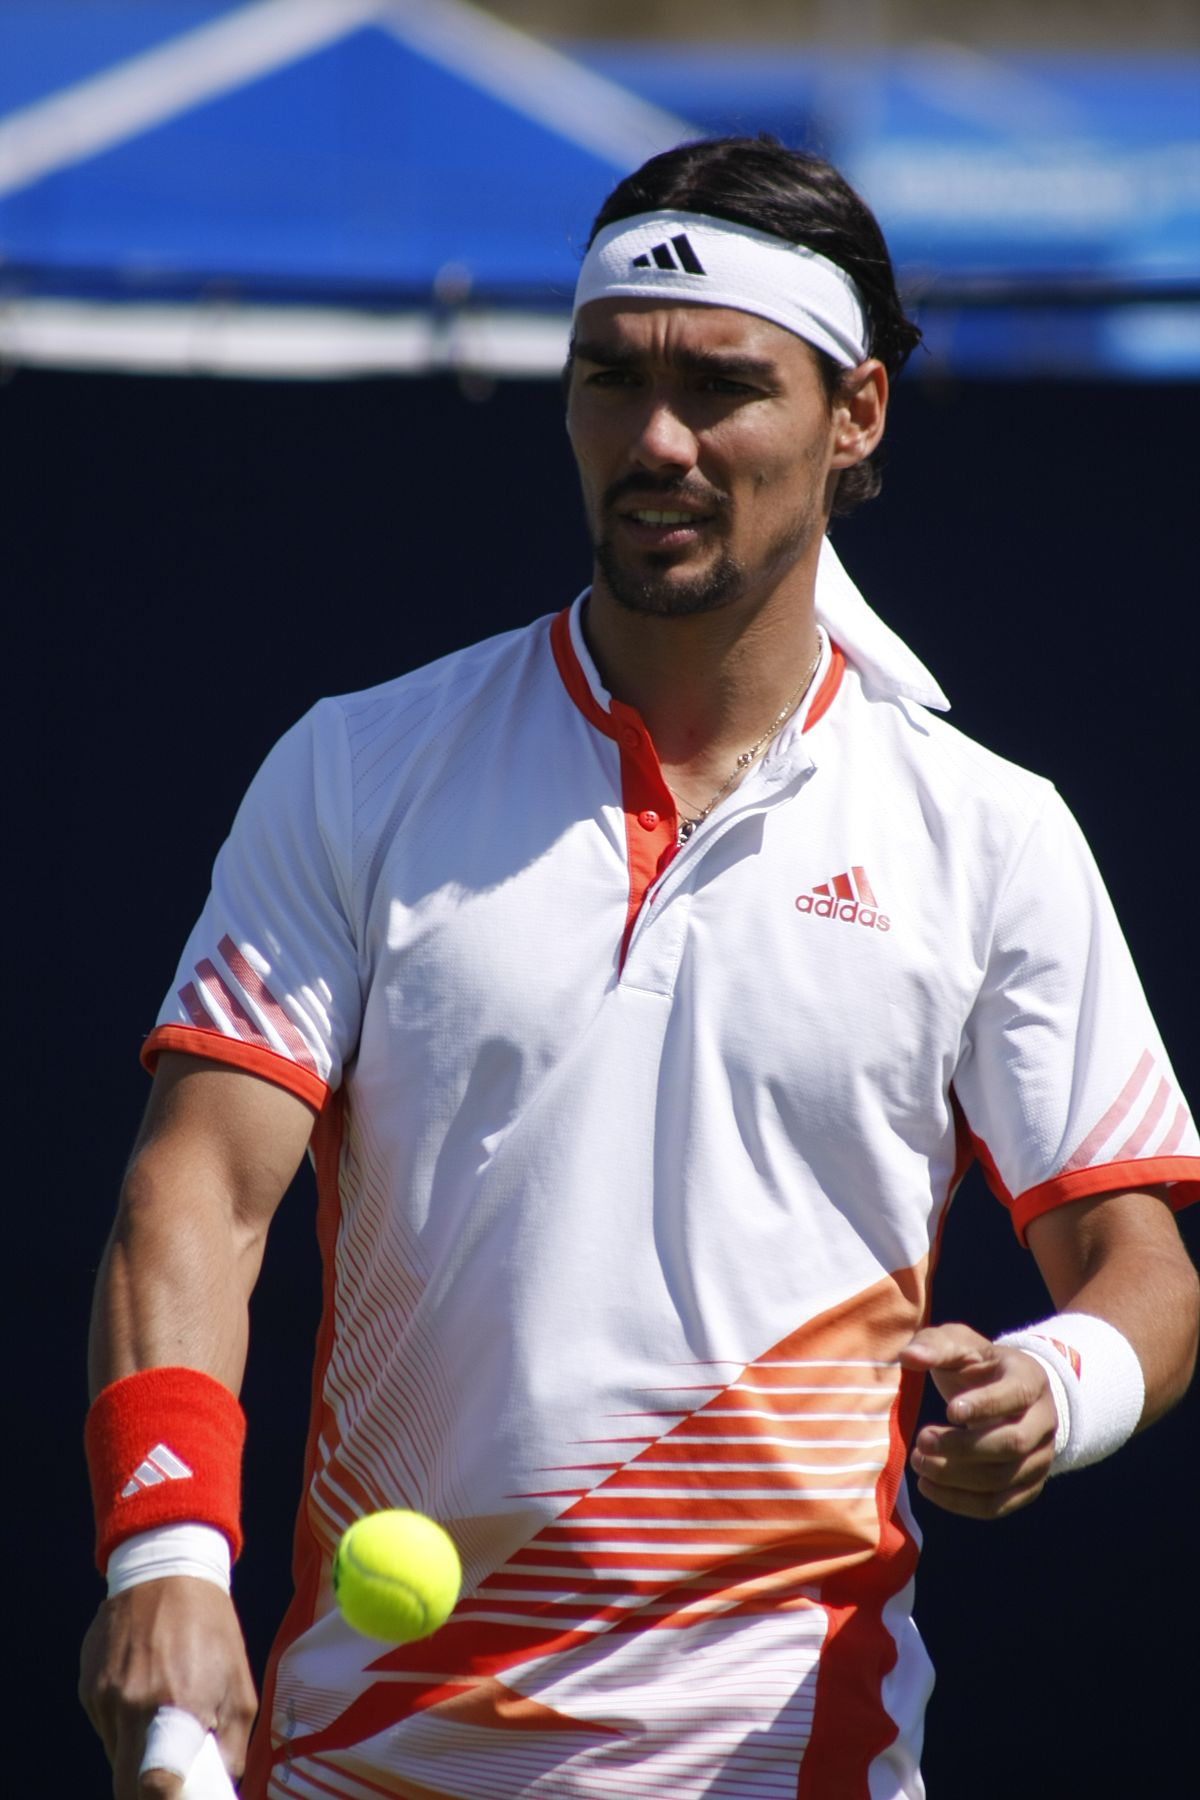 fabio fognini - photo #42